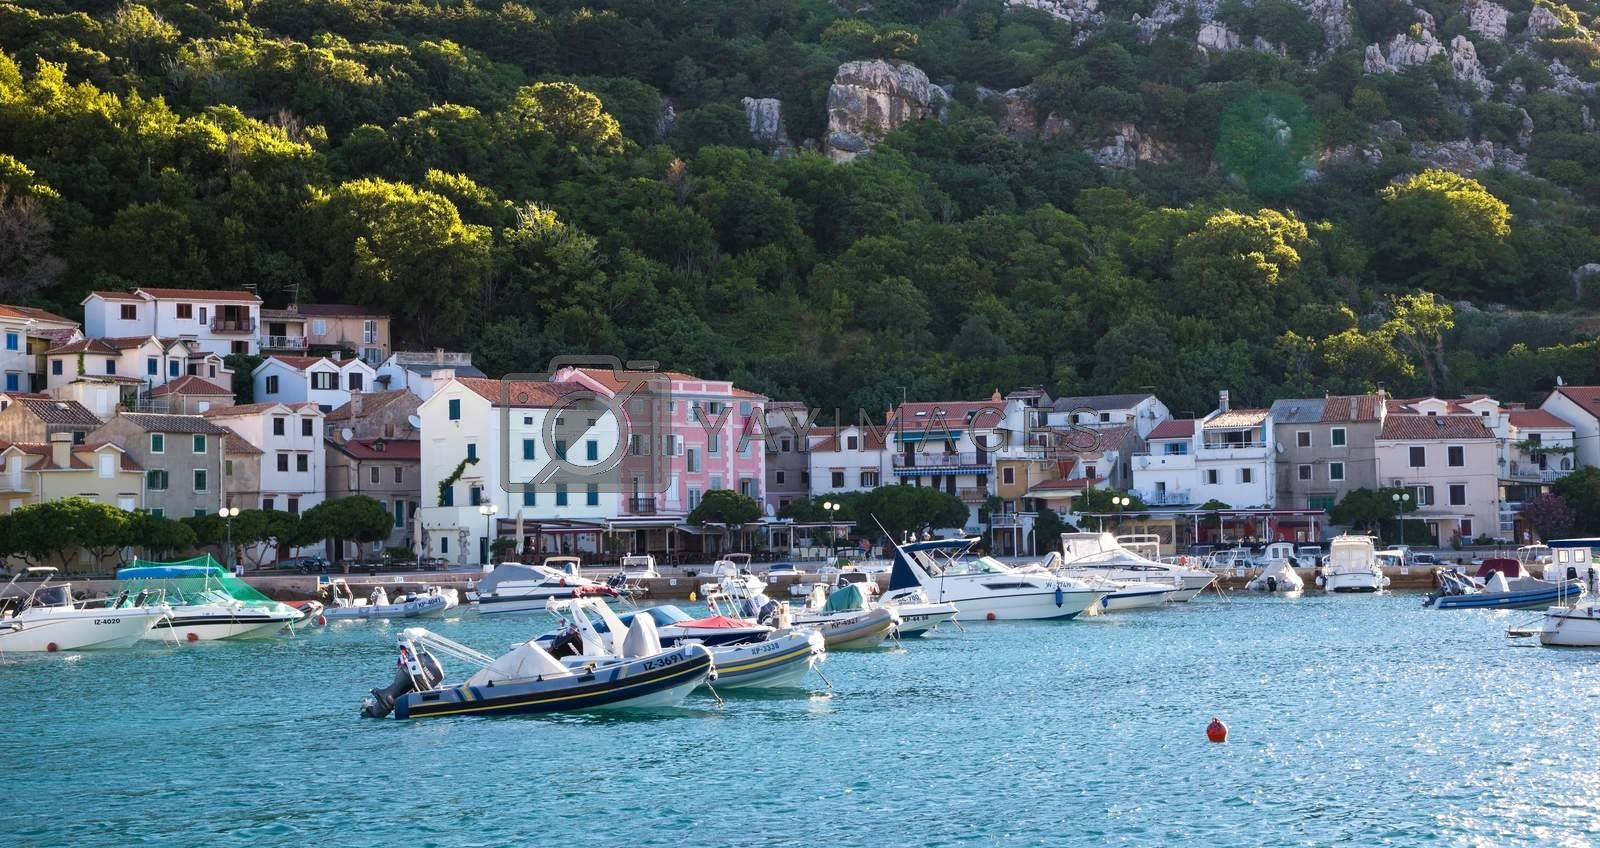 Mooring boats in the spa town by Sid10